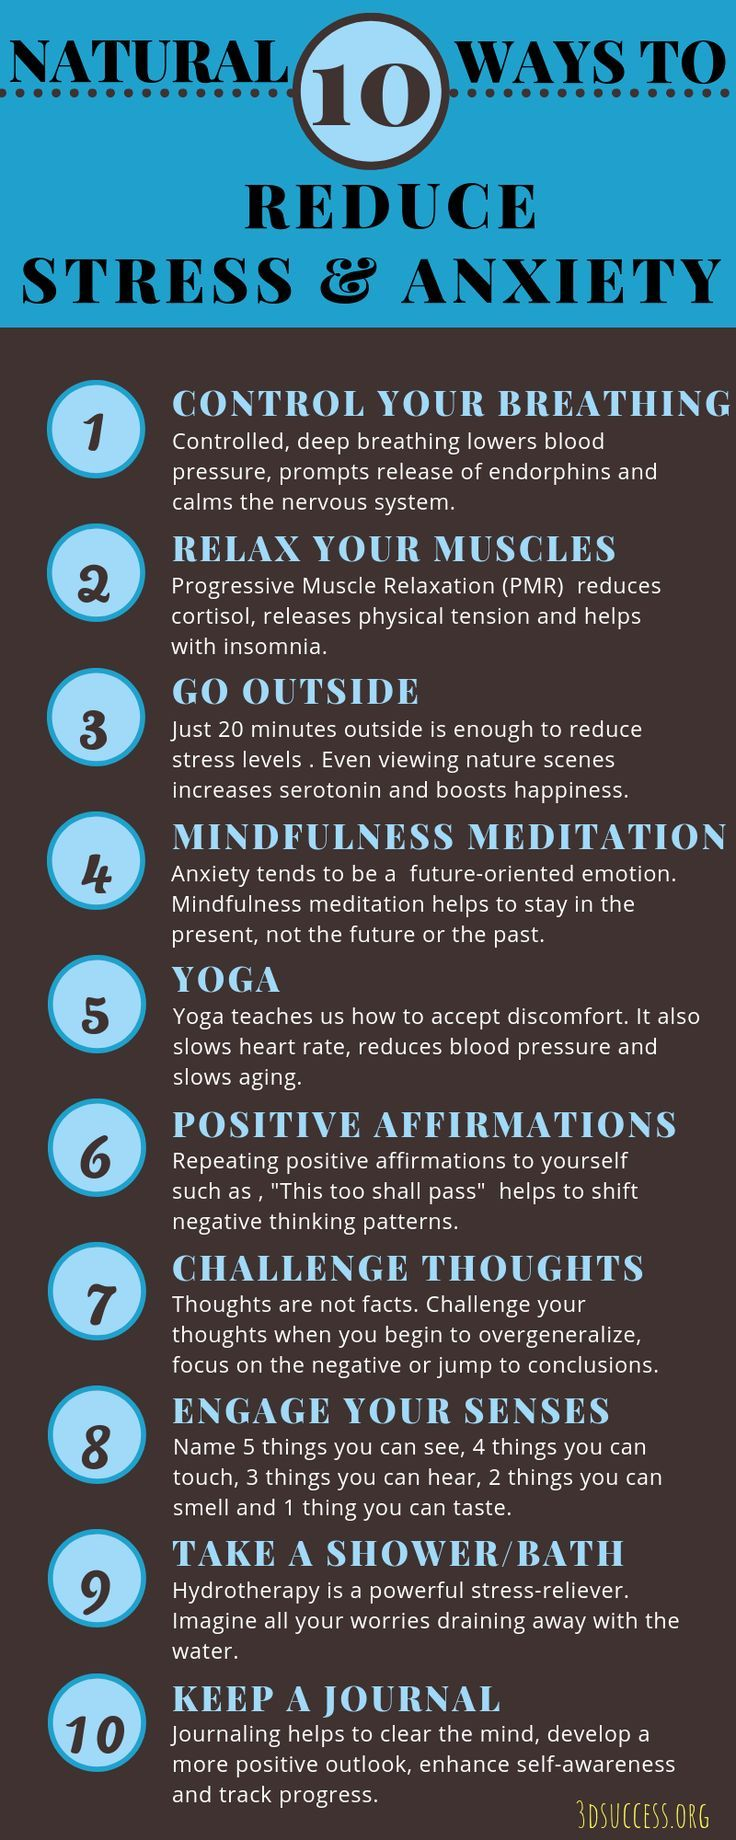 10 Natural Ways to Reduce Stress & Anxiety Infographic